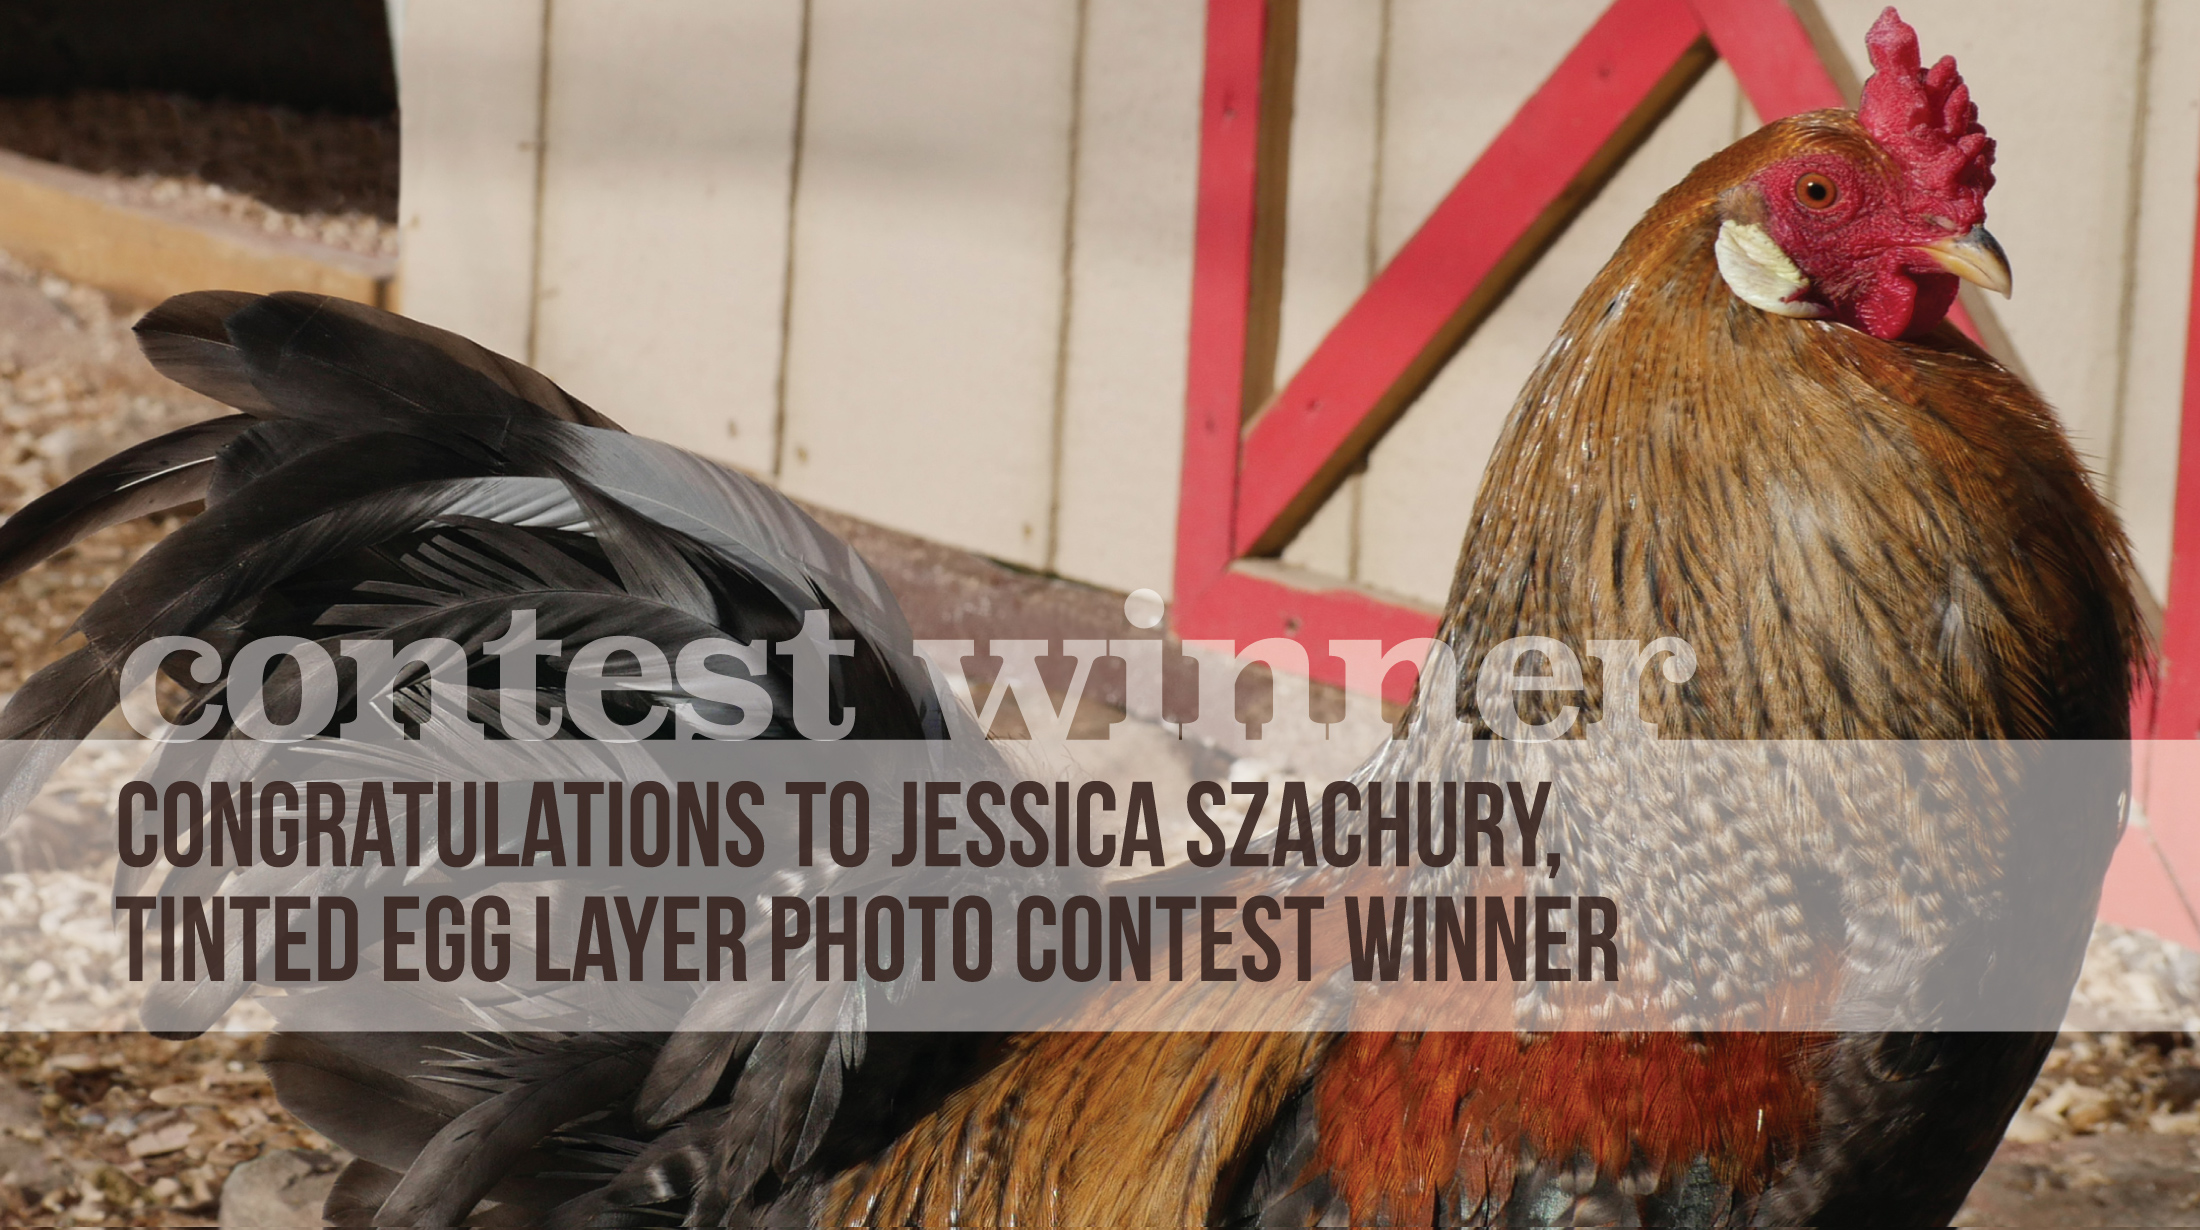 Tinted Egg Layer Photo Contest Winner Announced